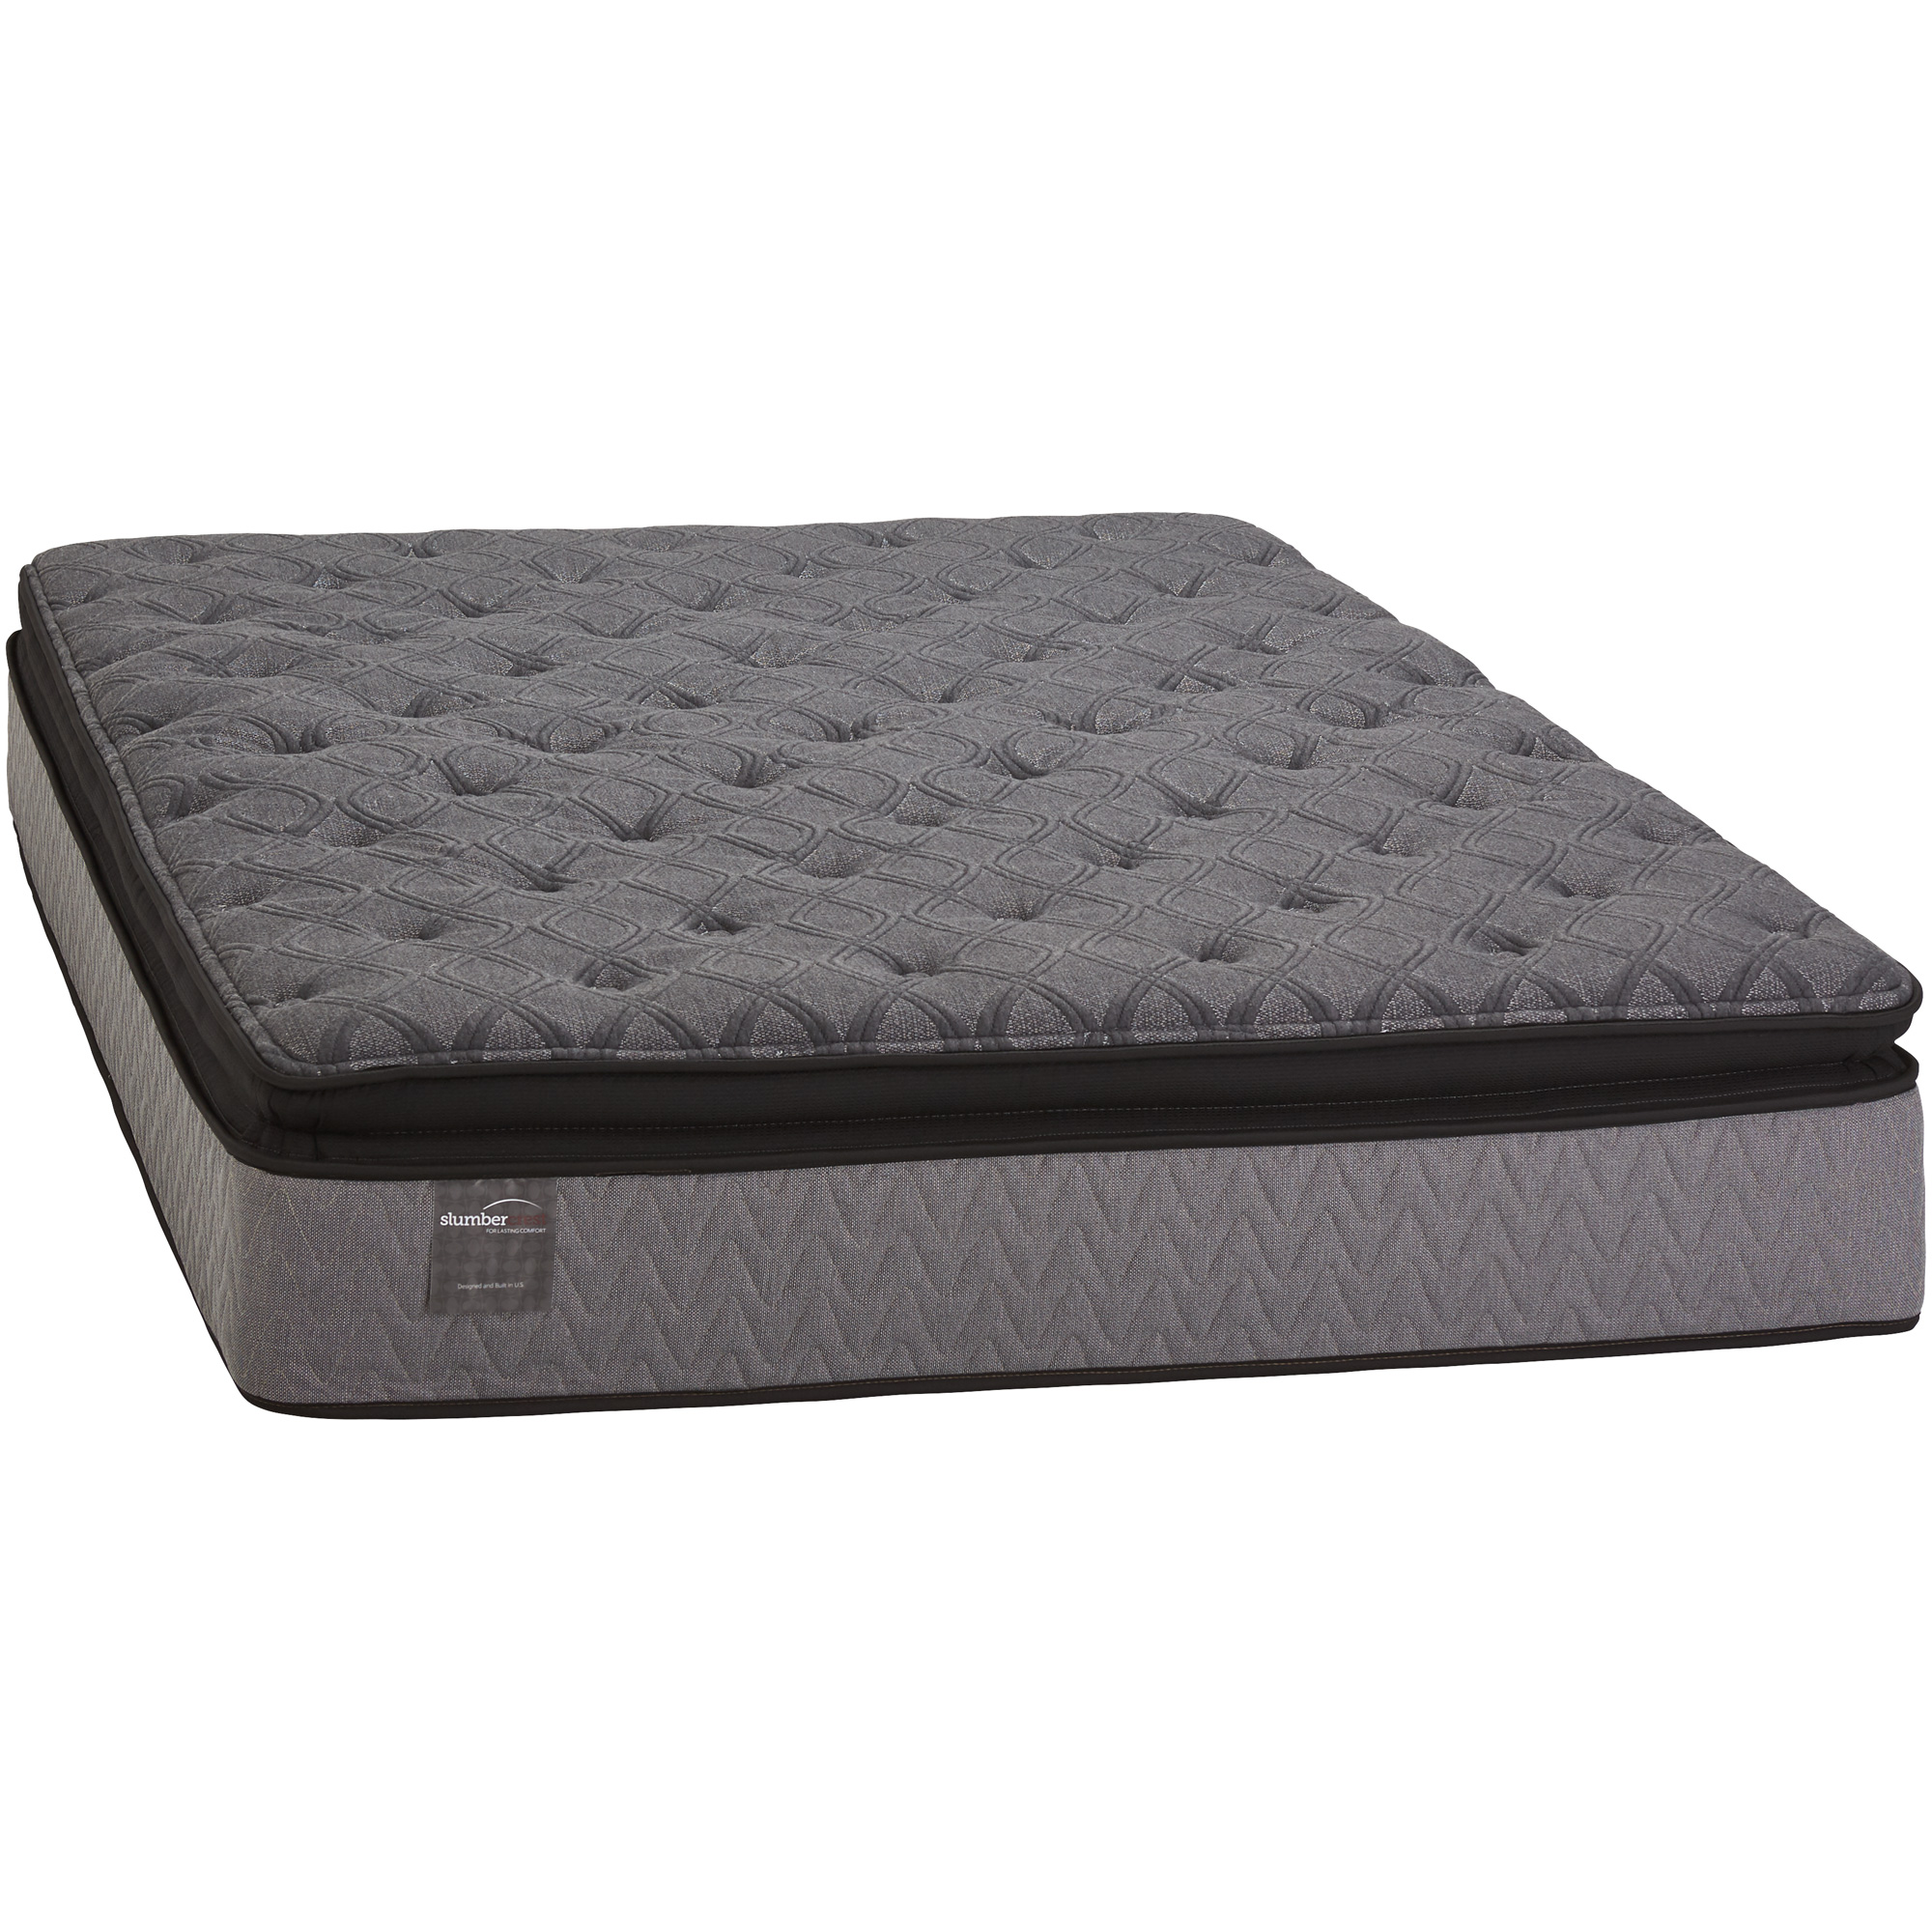 Slumbercrest Plush Pillowtop Twin XL Mattress